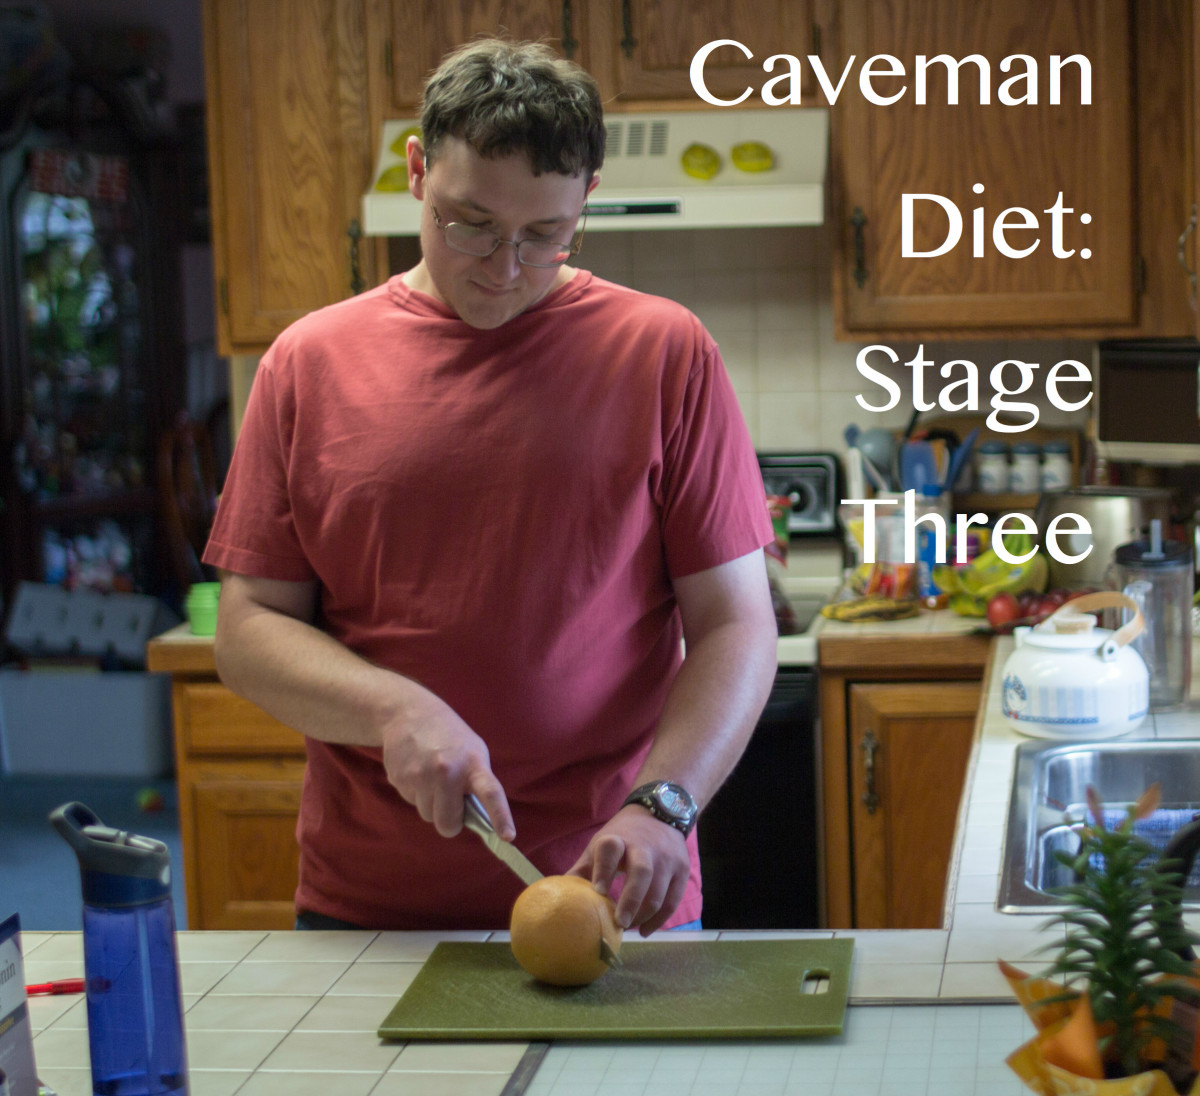 Follow the final stage of the caveman diet for as long as you want. The longer you follow it, the more second-nature it will become.